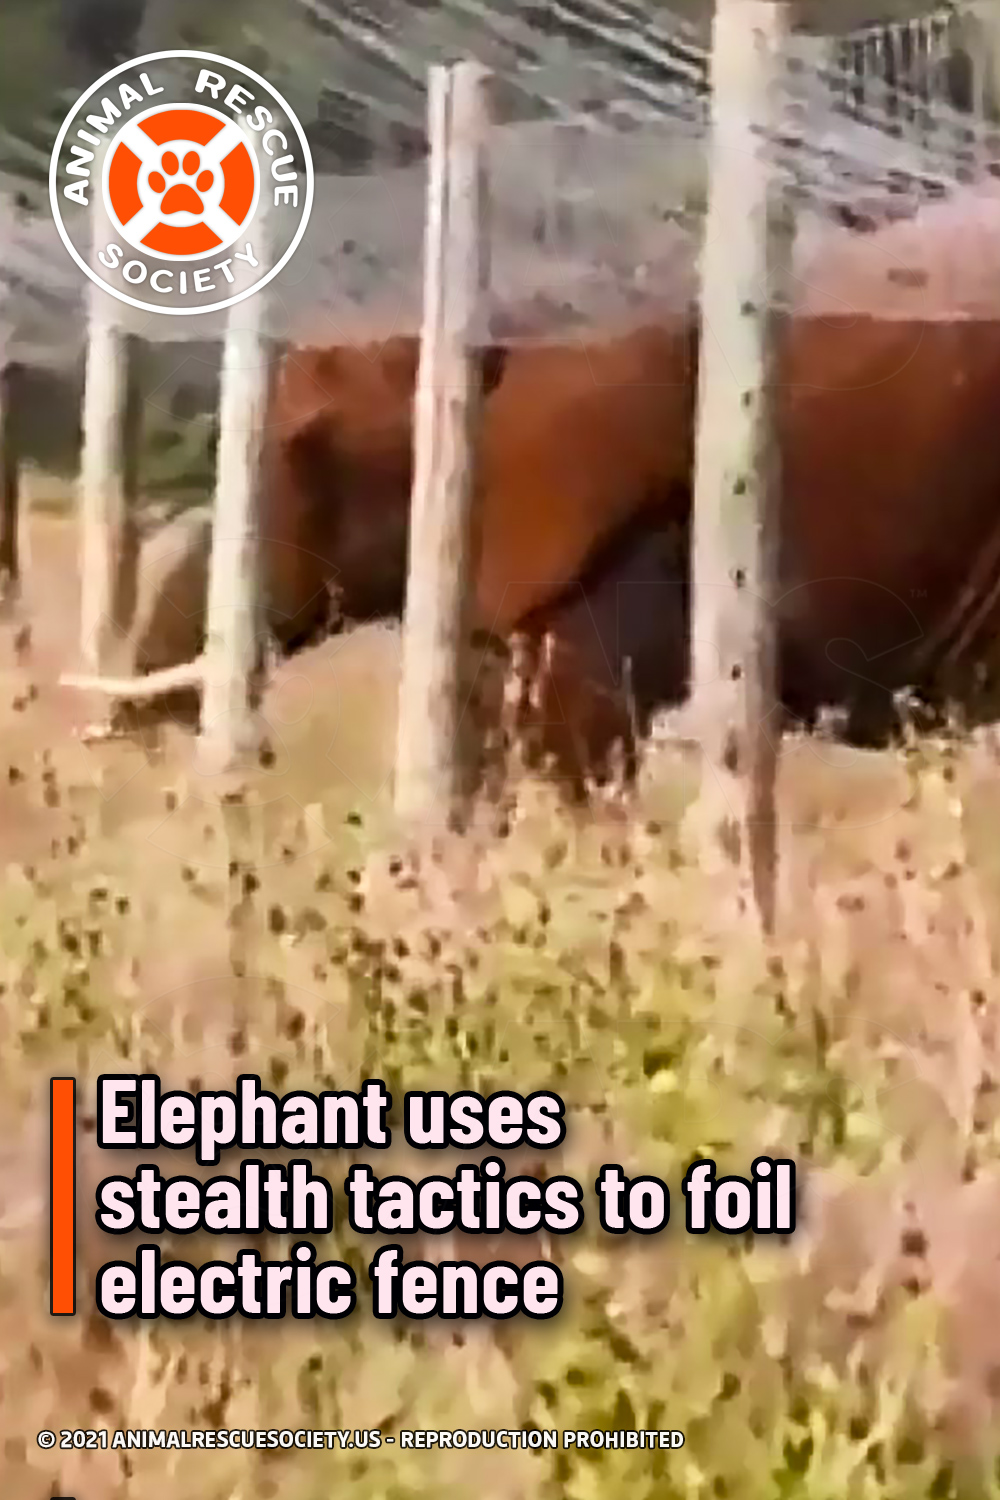 Elephant uses stealth tactics to foil electric fence